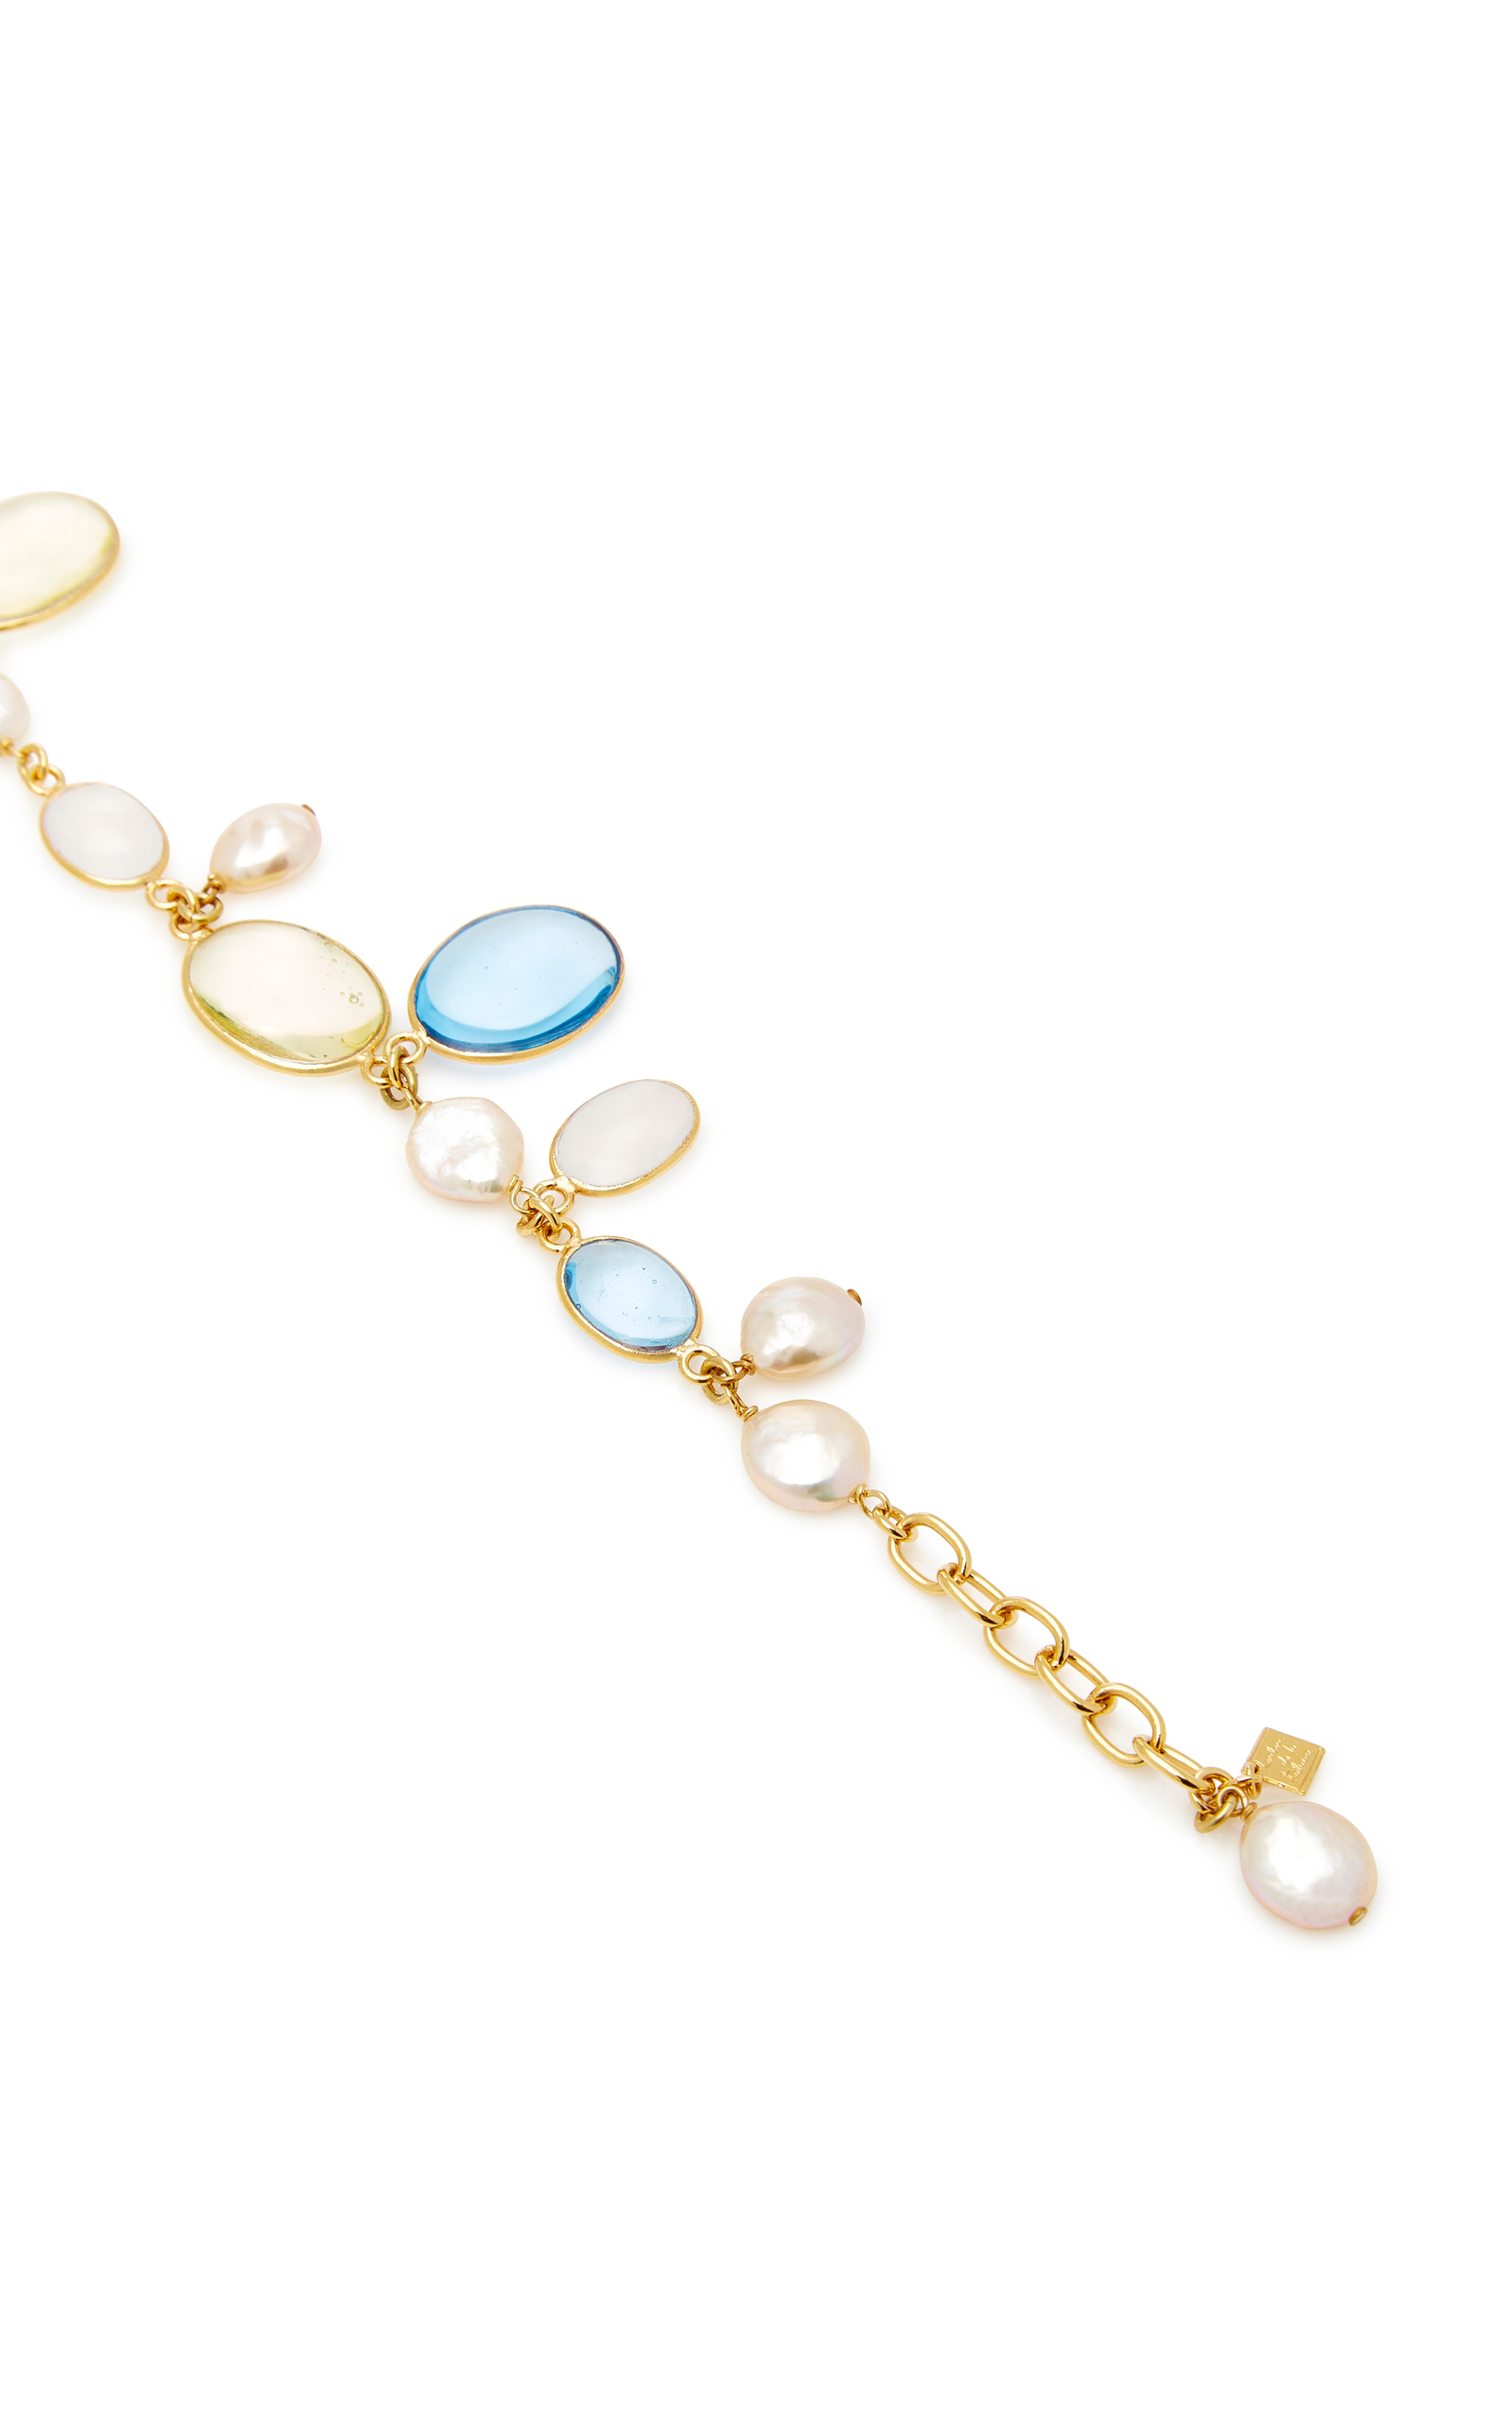 Pebble and Pearl 24K Gold-Plated Crystal Bracelet Loulou De La Falaise 85abGa